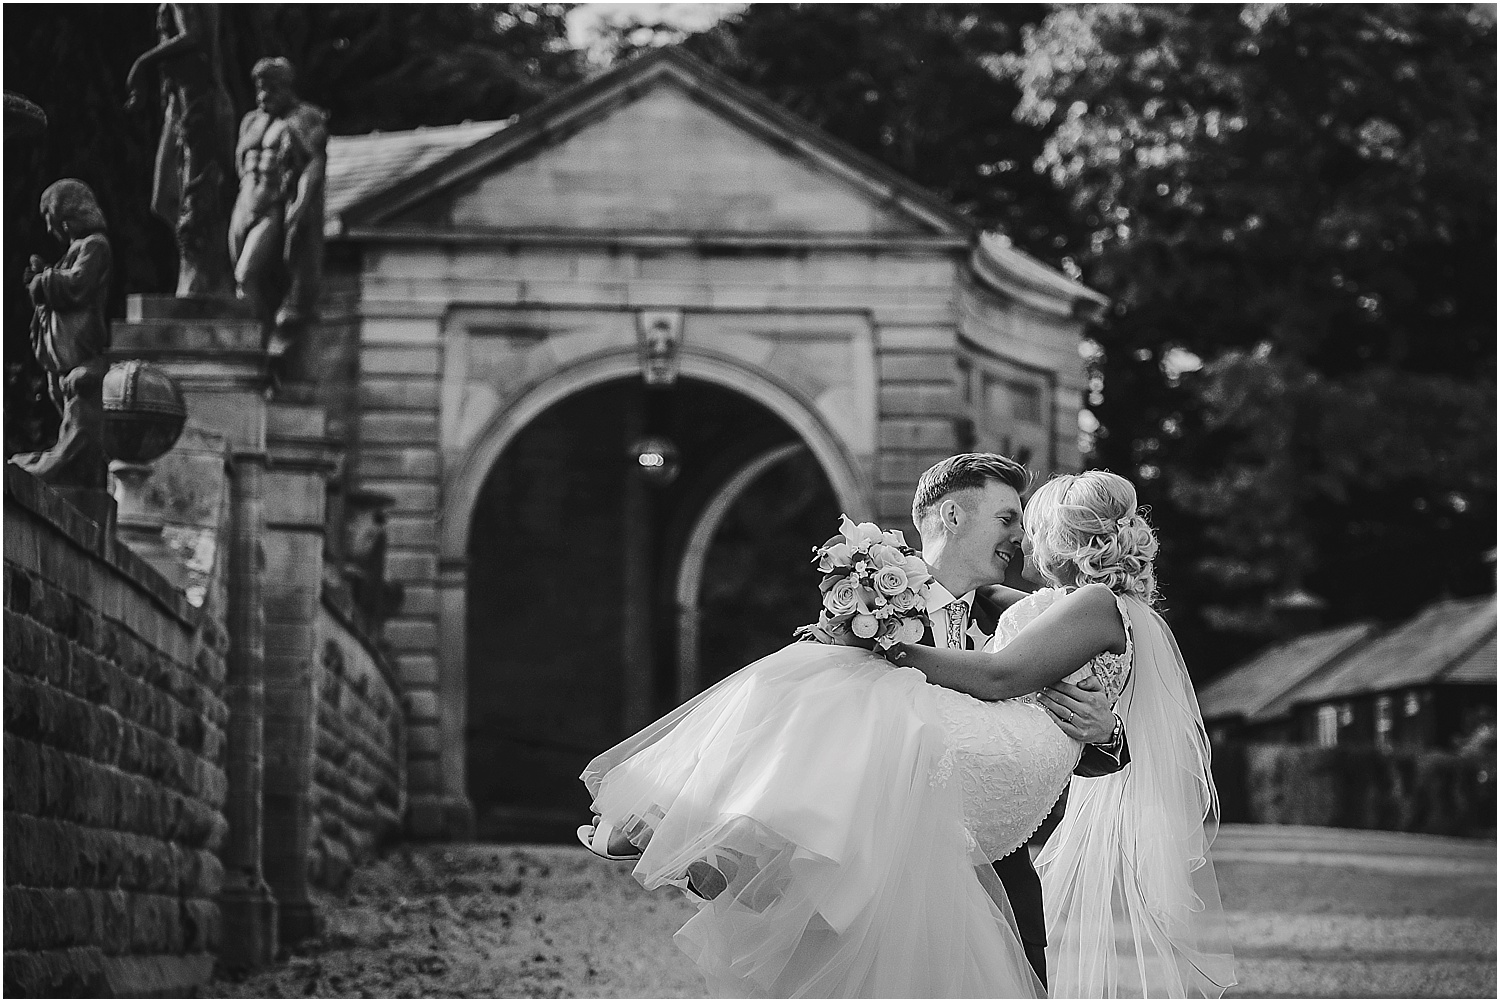 Lartington Hall weddings by www.2tonephotography.co.uk 077.jpg